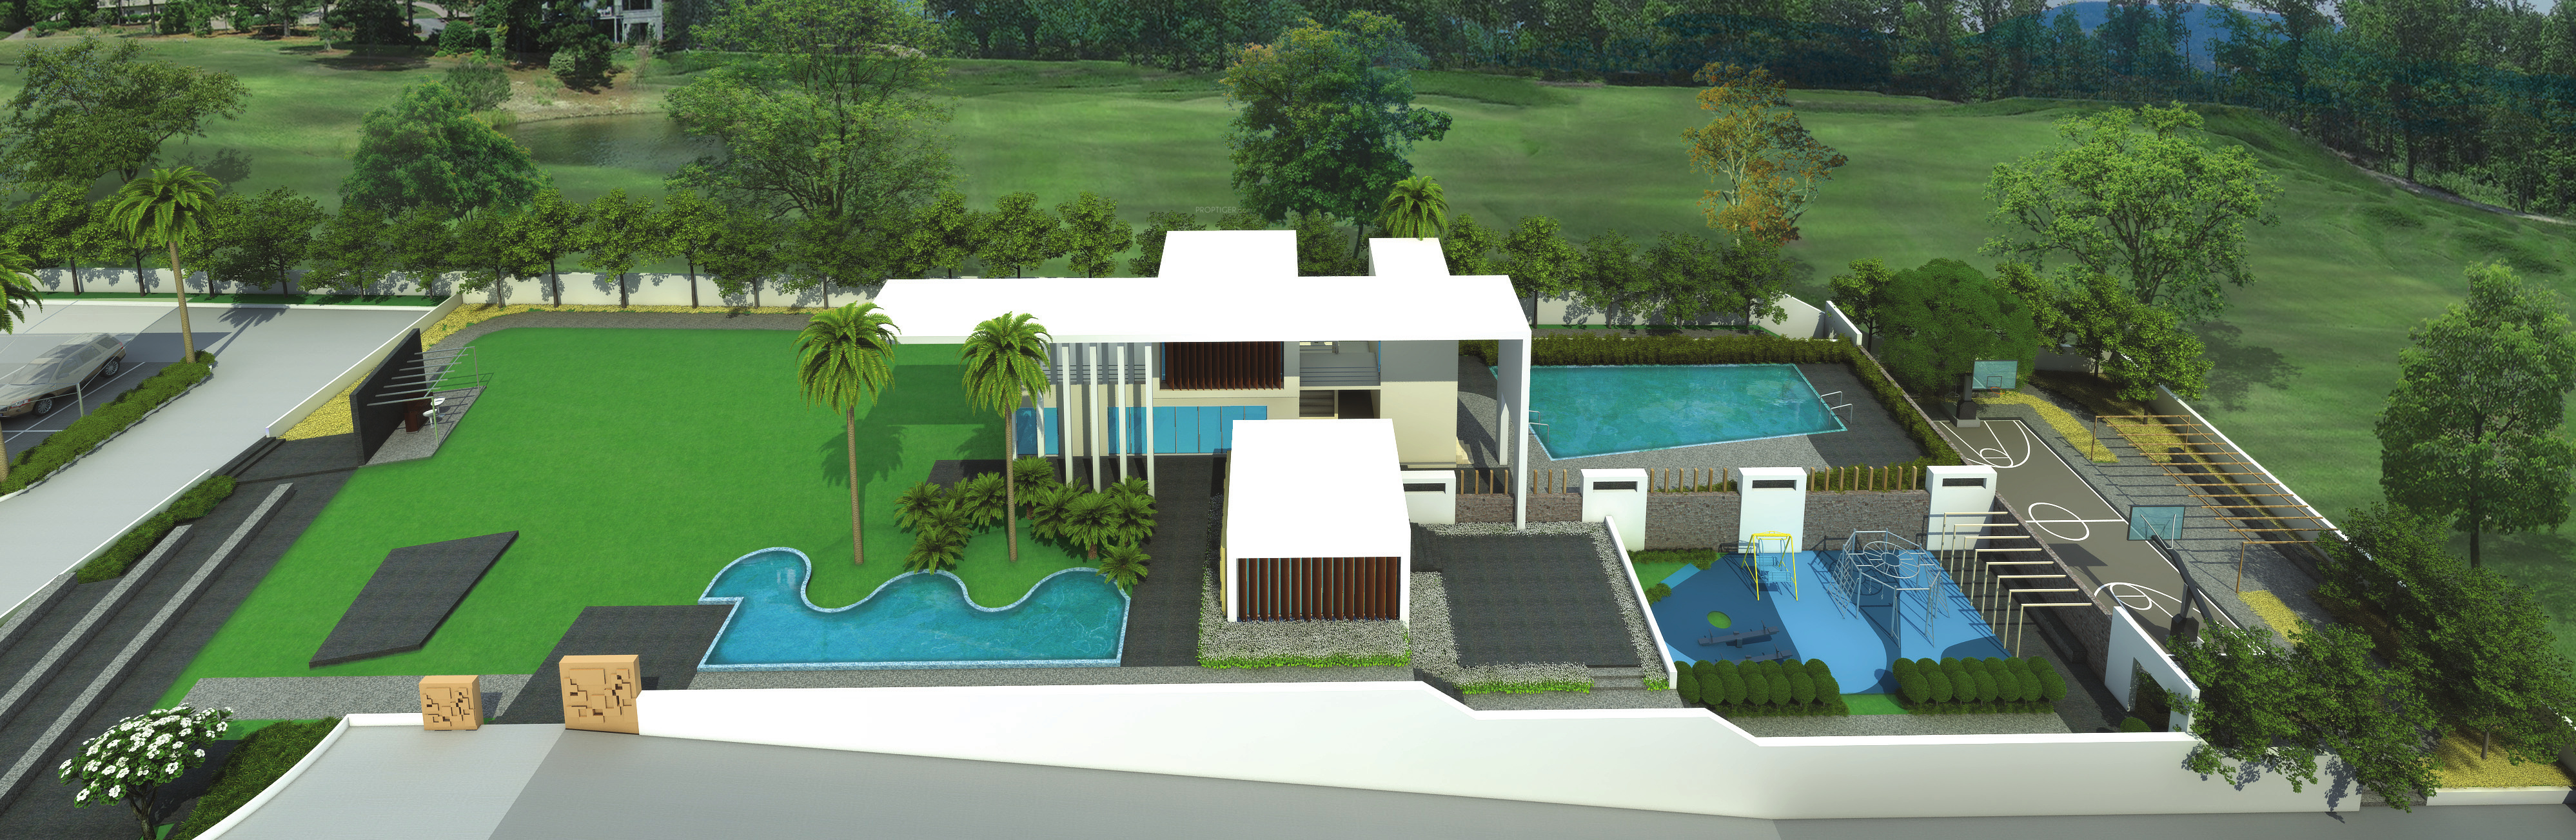 My home upcoming projects